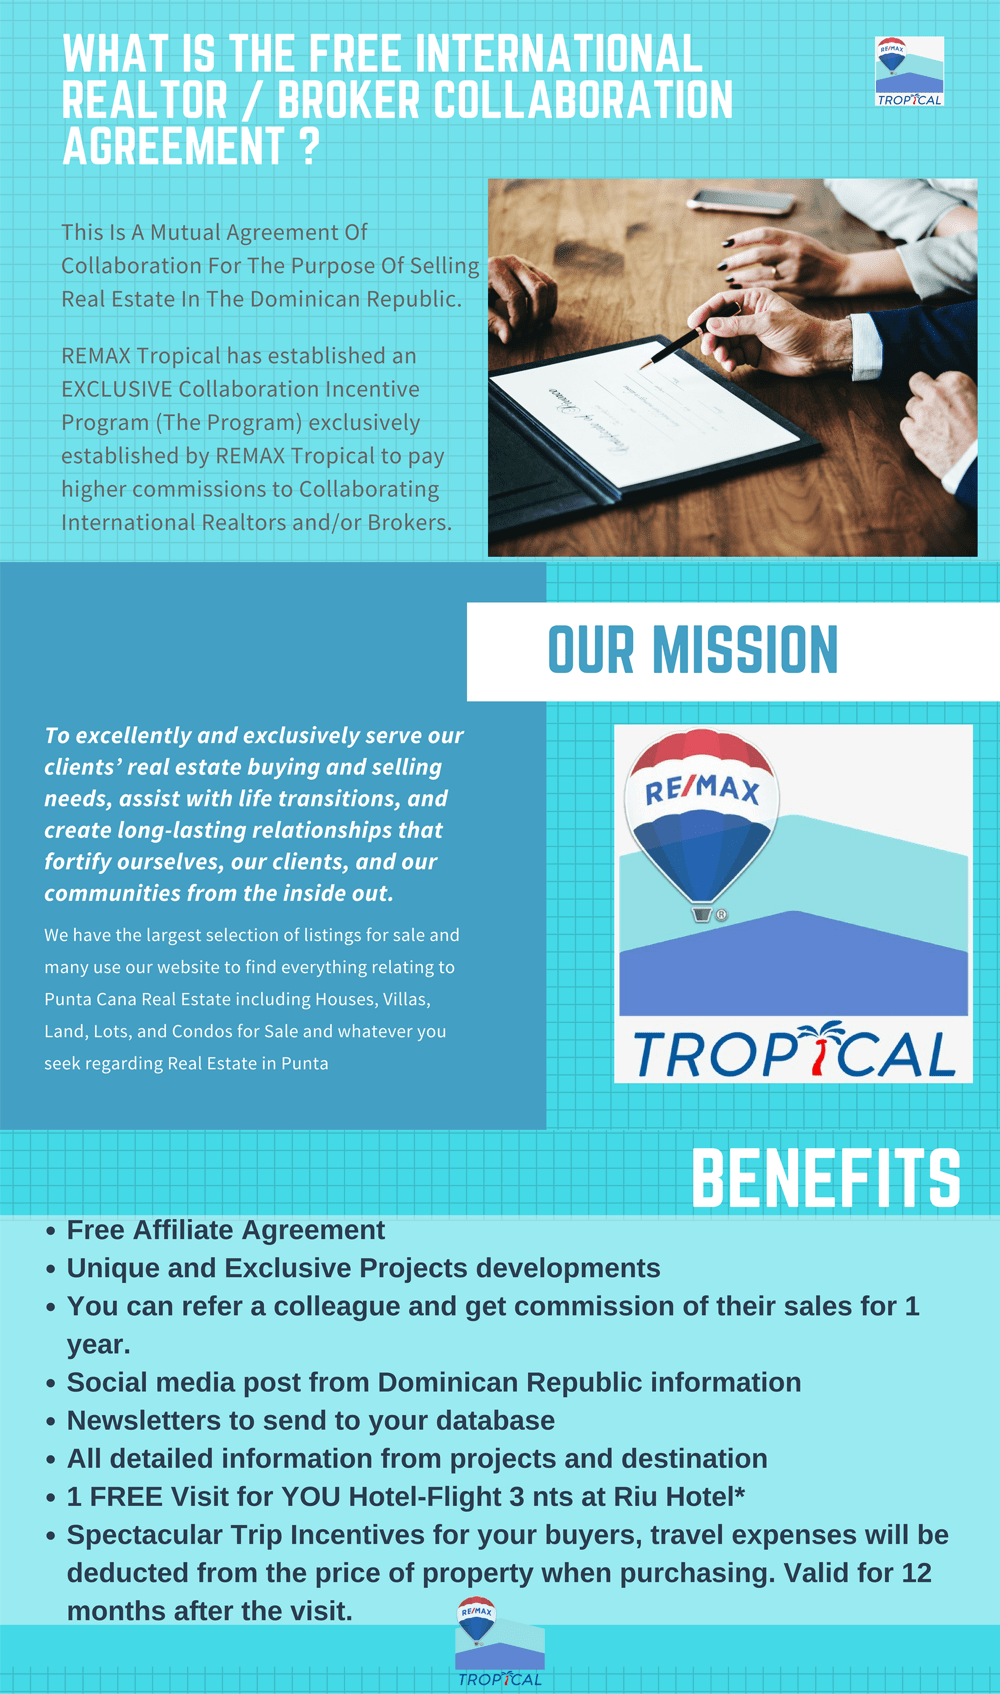 What is the free international realtor broker collaboration agreement?